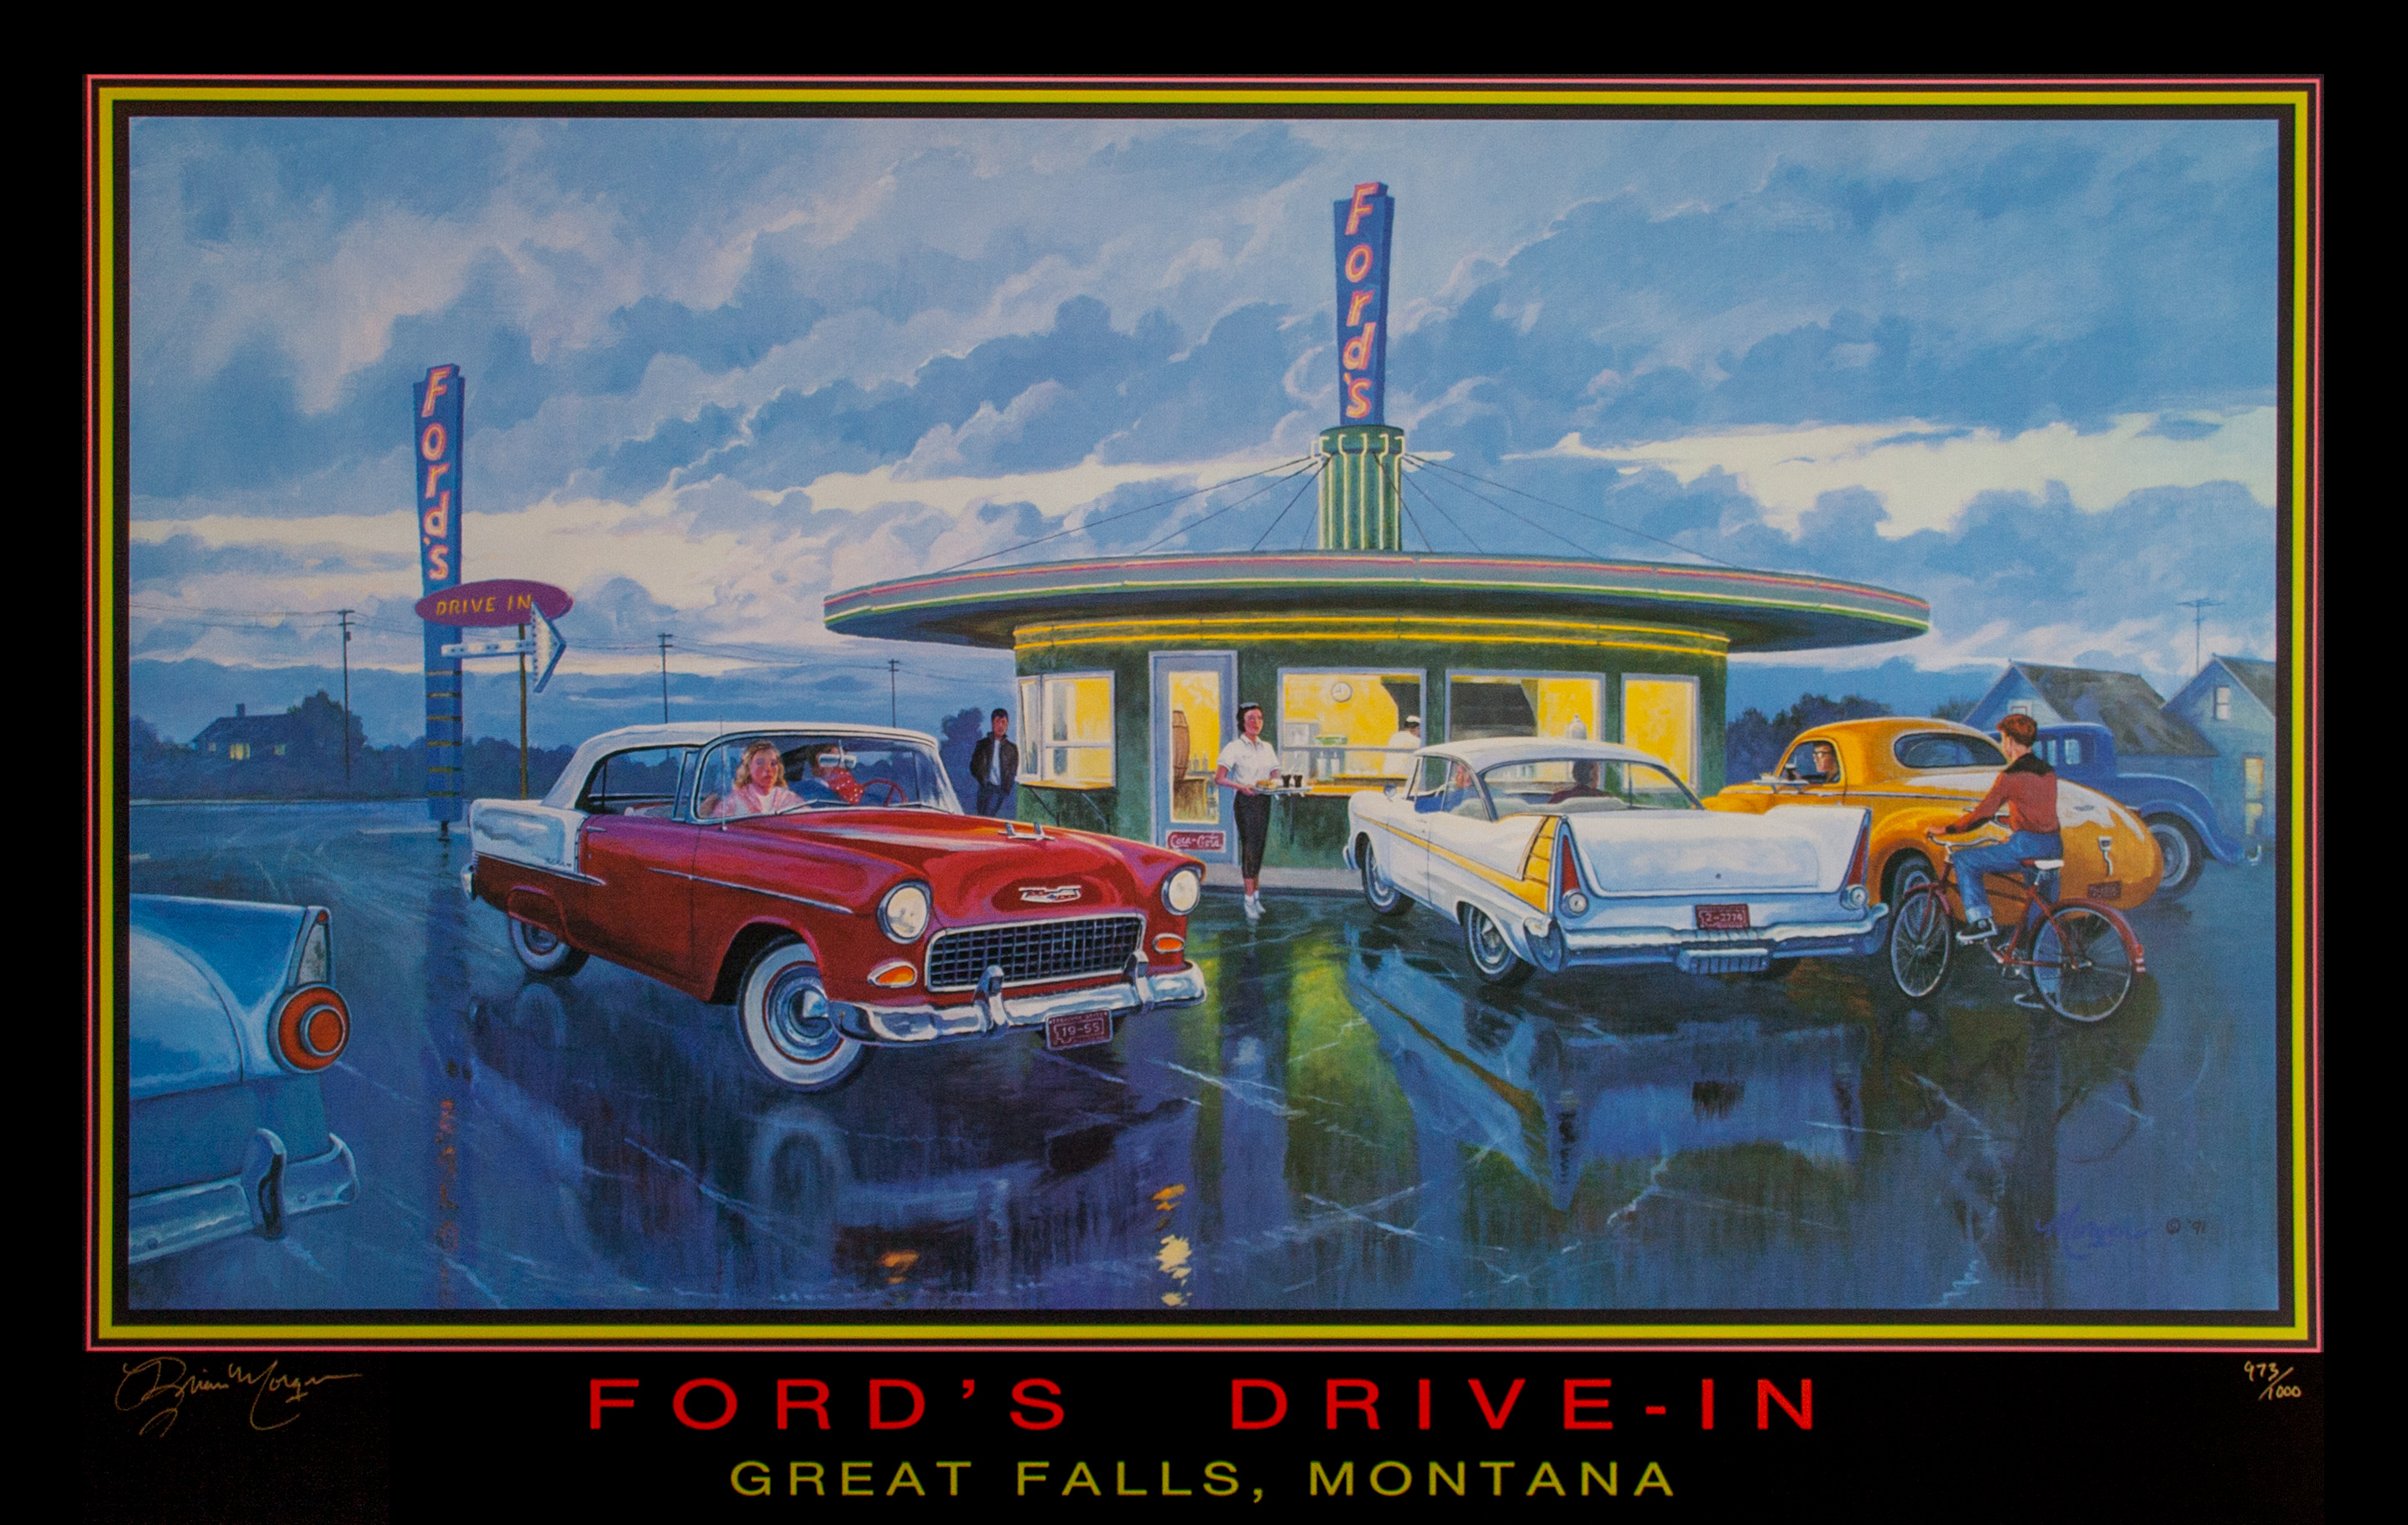 Ford's Drive-In